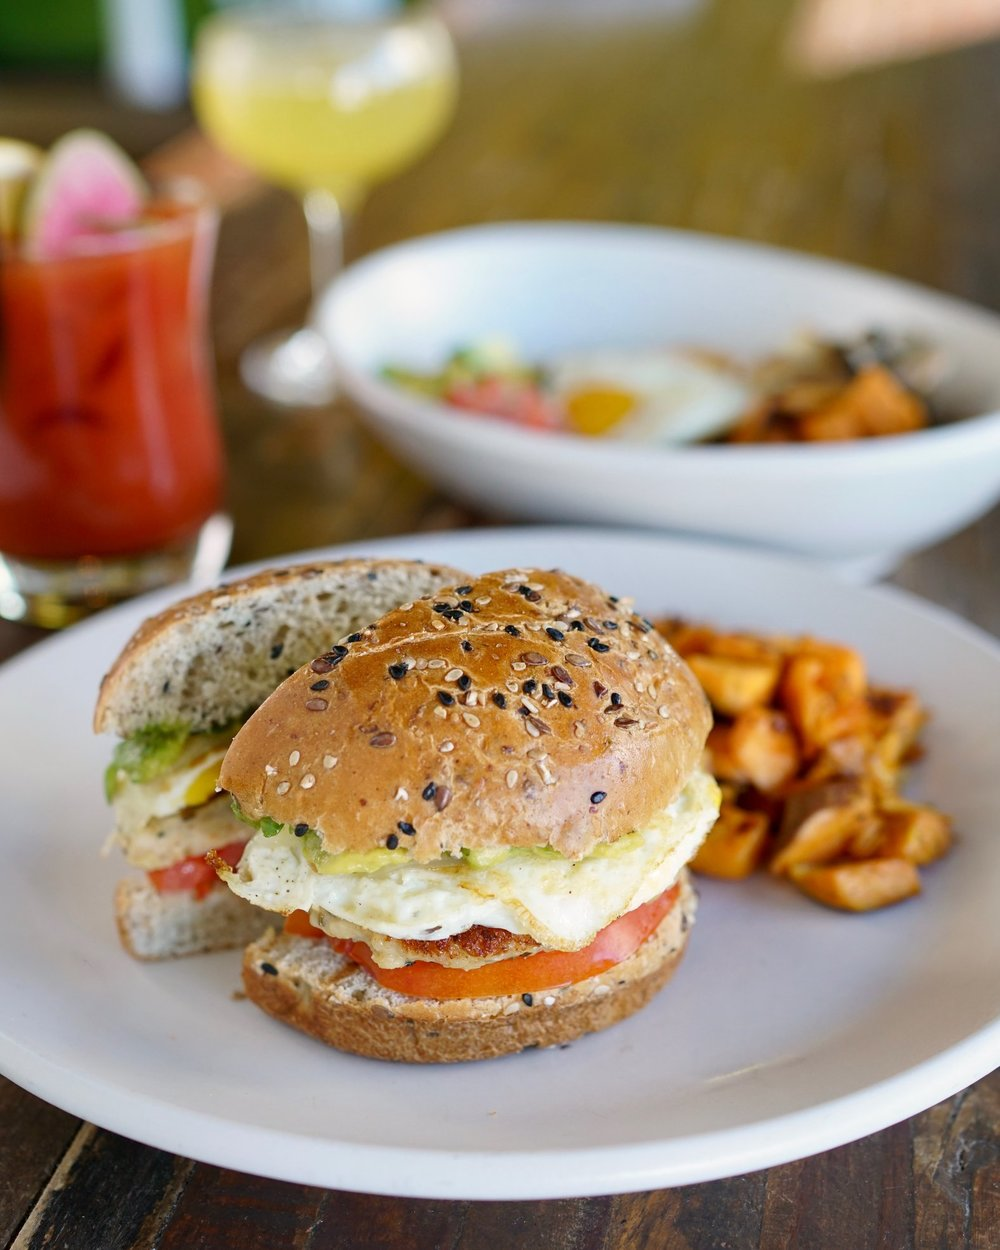 True Food   8383 Preston Center Plaza #100 - Perhaps the healthiest brunch menu in Dallas, this place will make you feel like you're cheating on your diet. There are also plenty of options for lunch and dinner but dieting or not, brunch is where it's at.